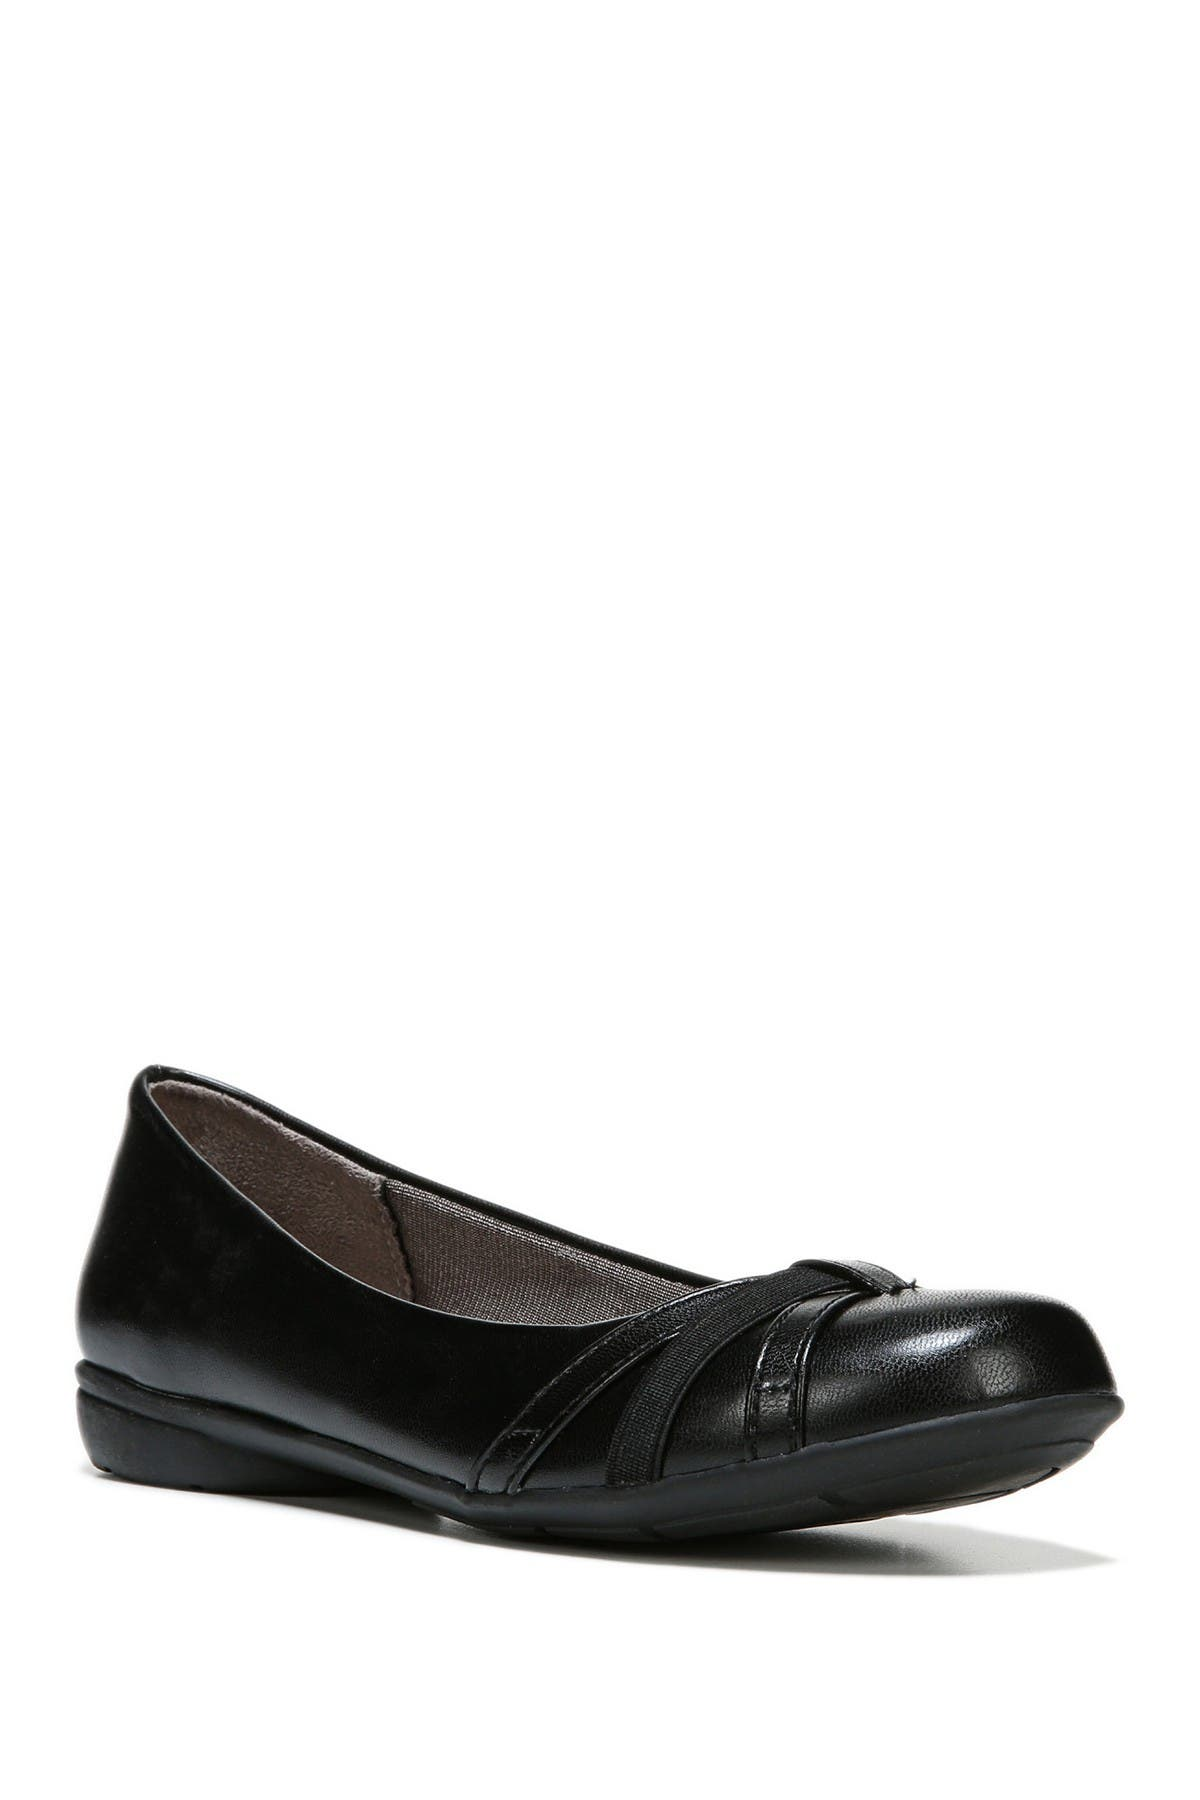 Image of LifeStride Abigail Flat - Wide Width Available